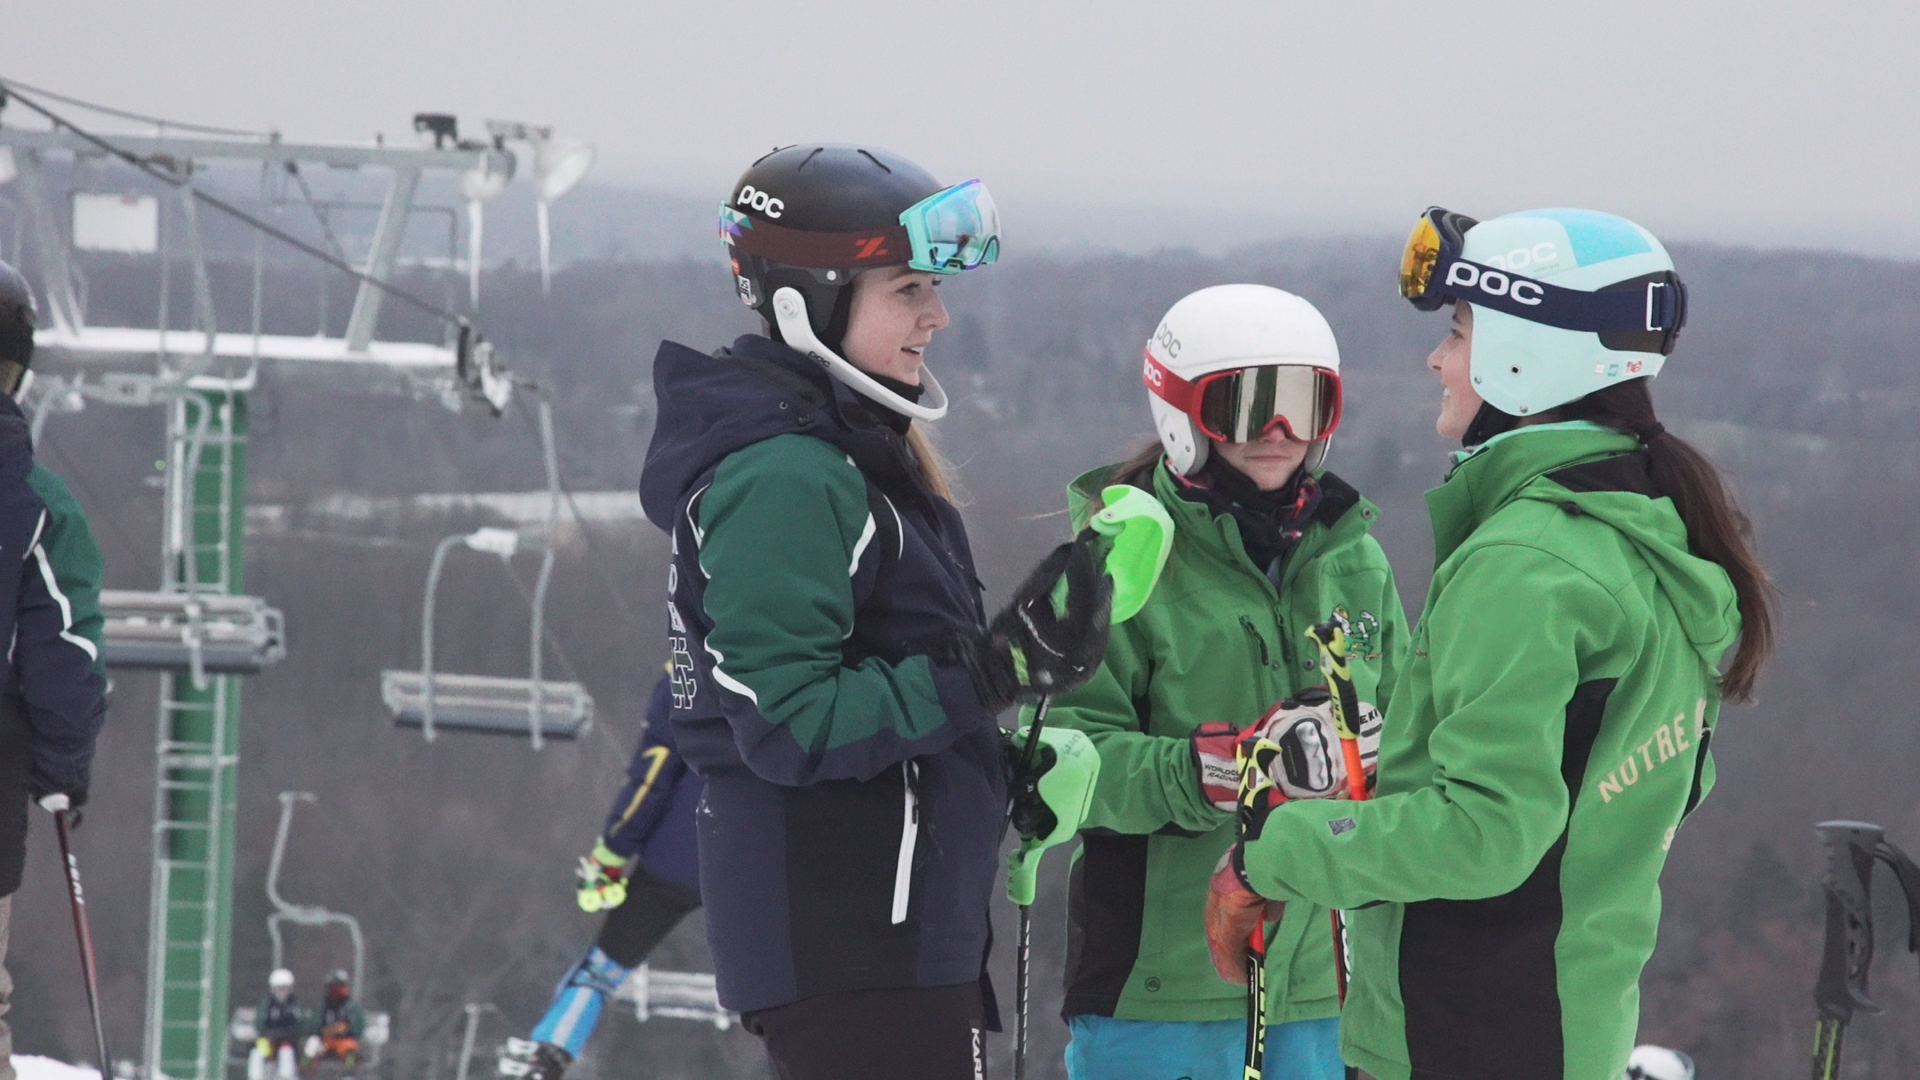 Three high school girls ski racing team members talk at the top of the slope.